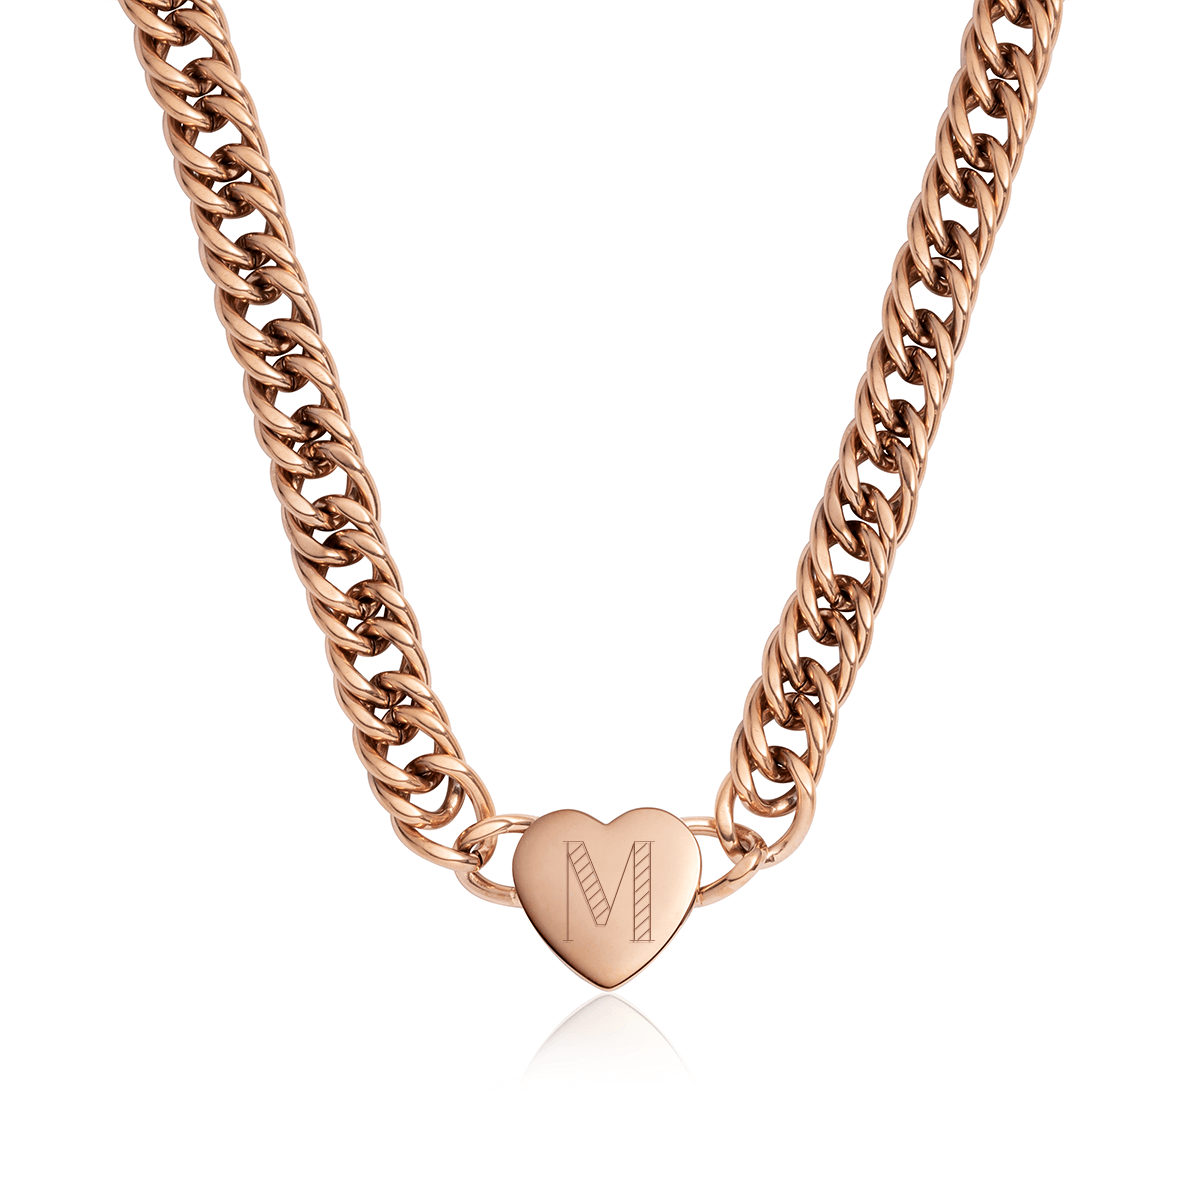 Heart Curb Chain Personalise Necklace (Rose Gold)